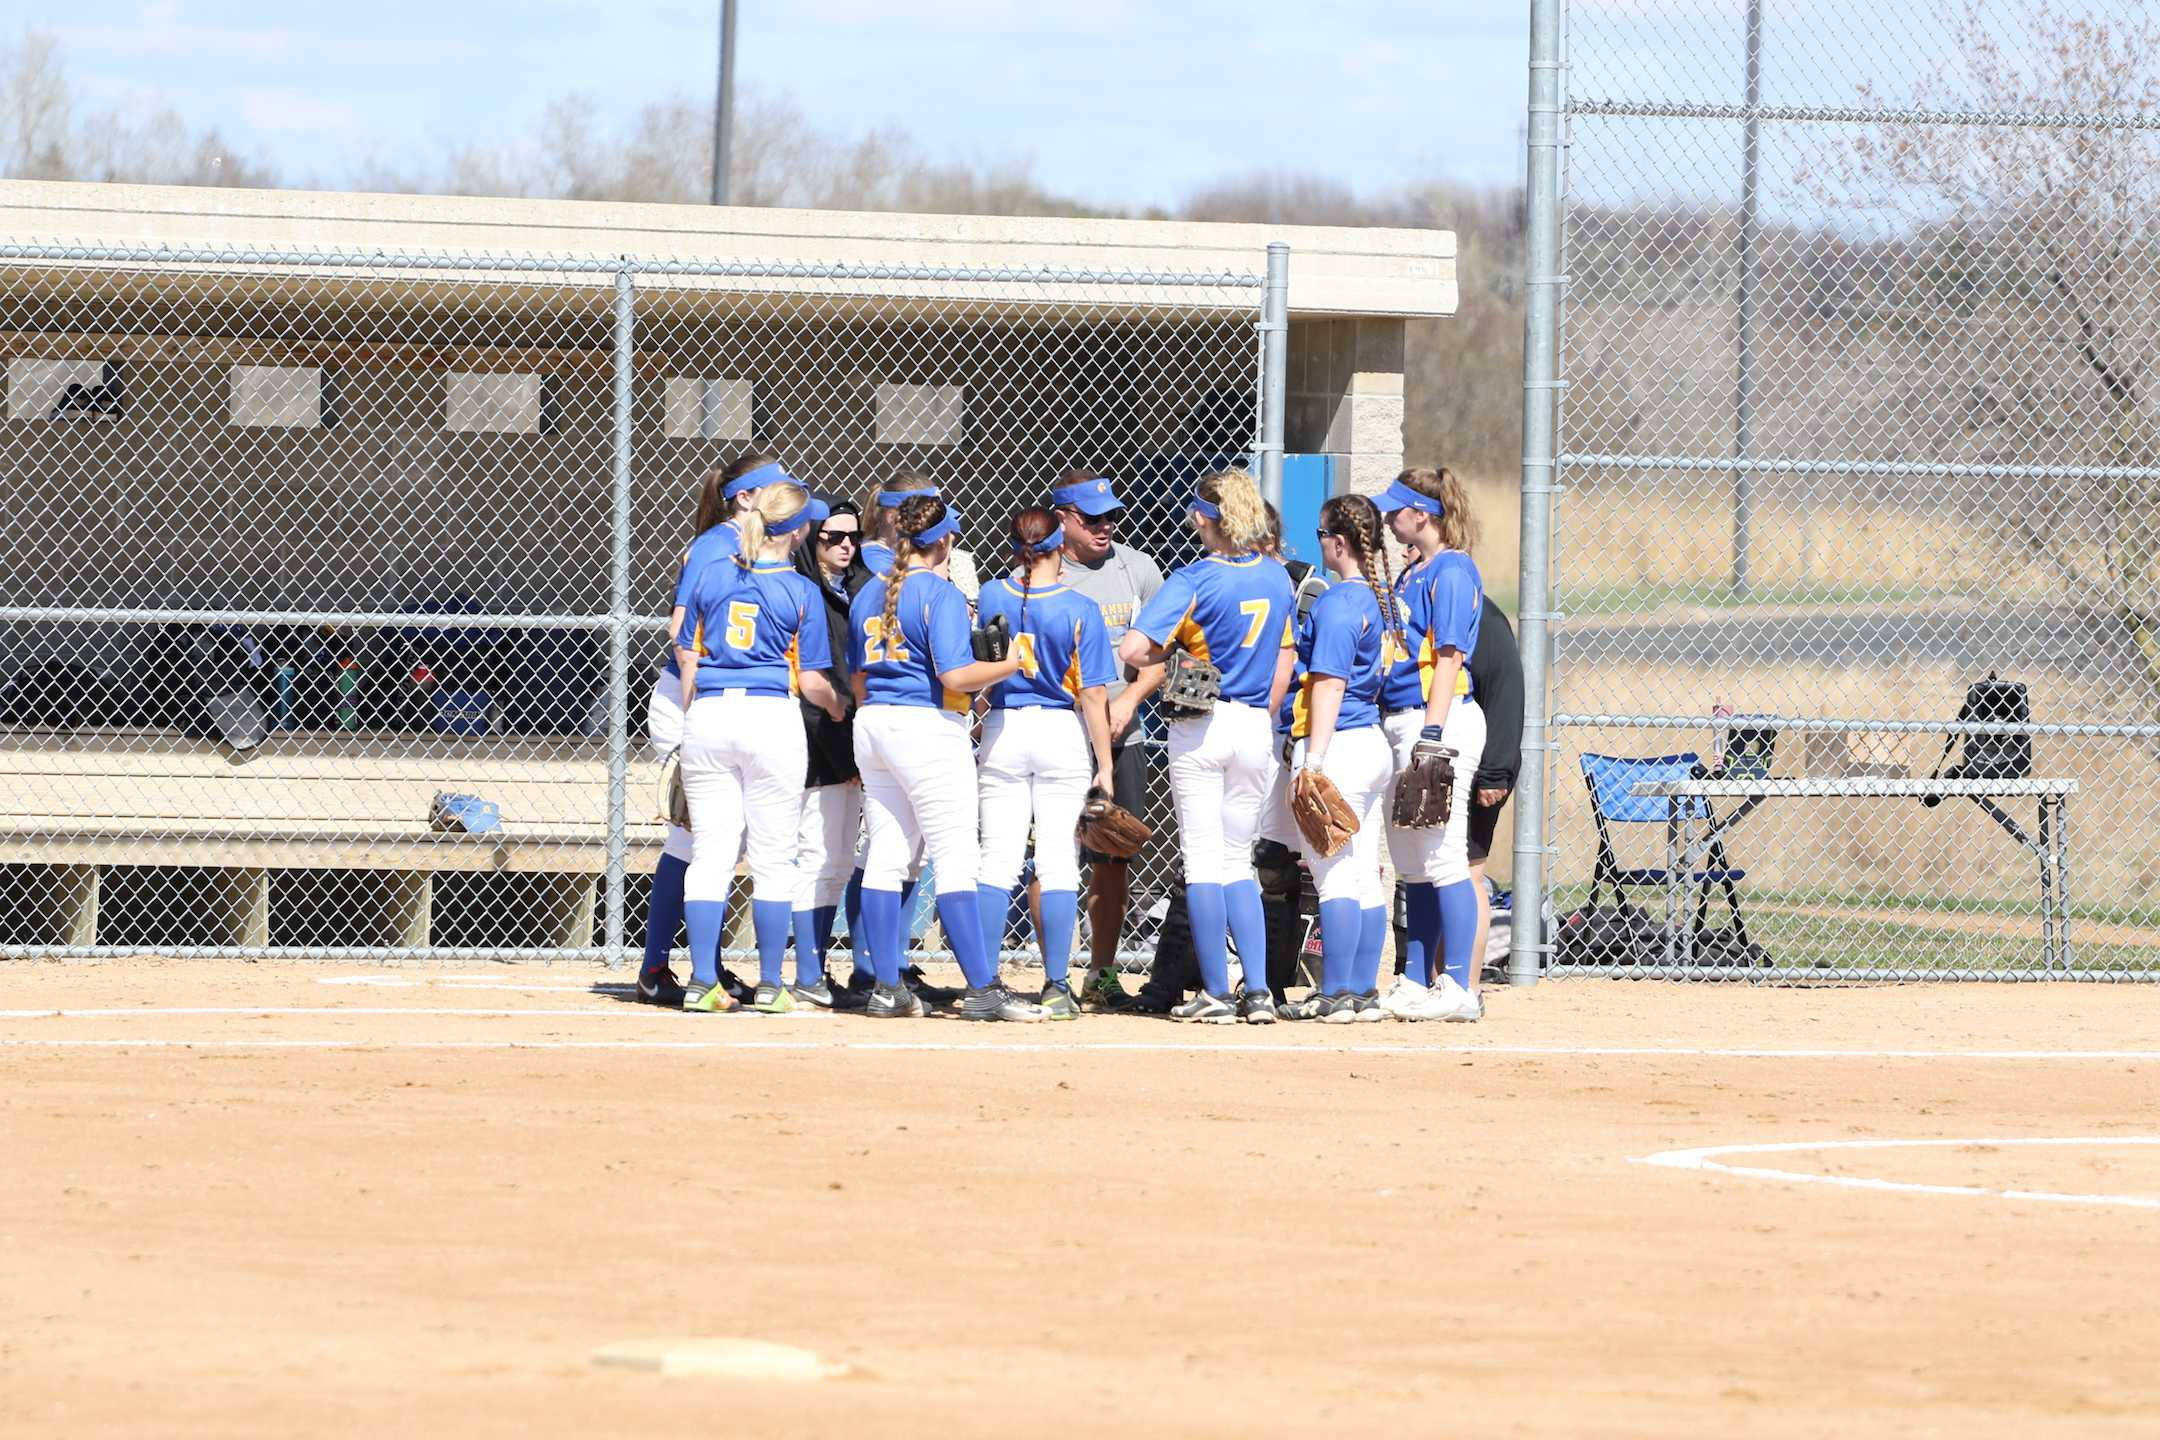 Women's softball plays at Cambridge campus. Photo Credit: ARCC Golden Rams